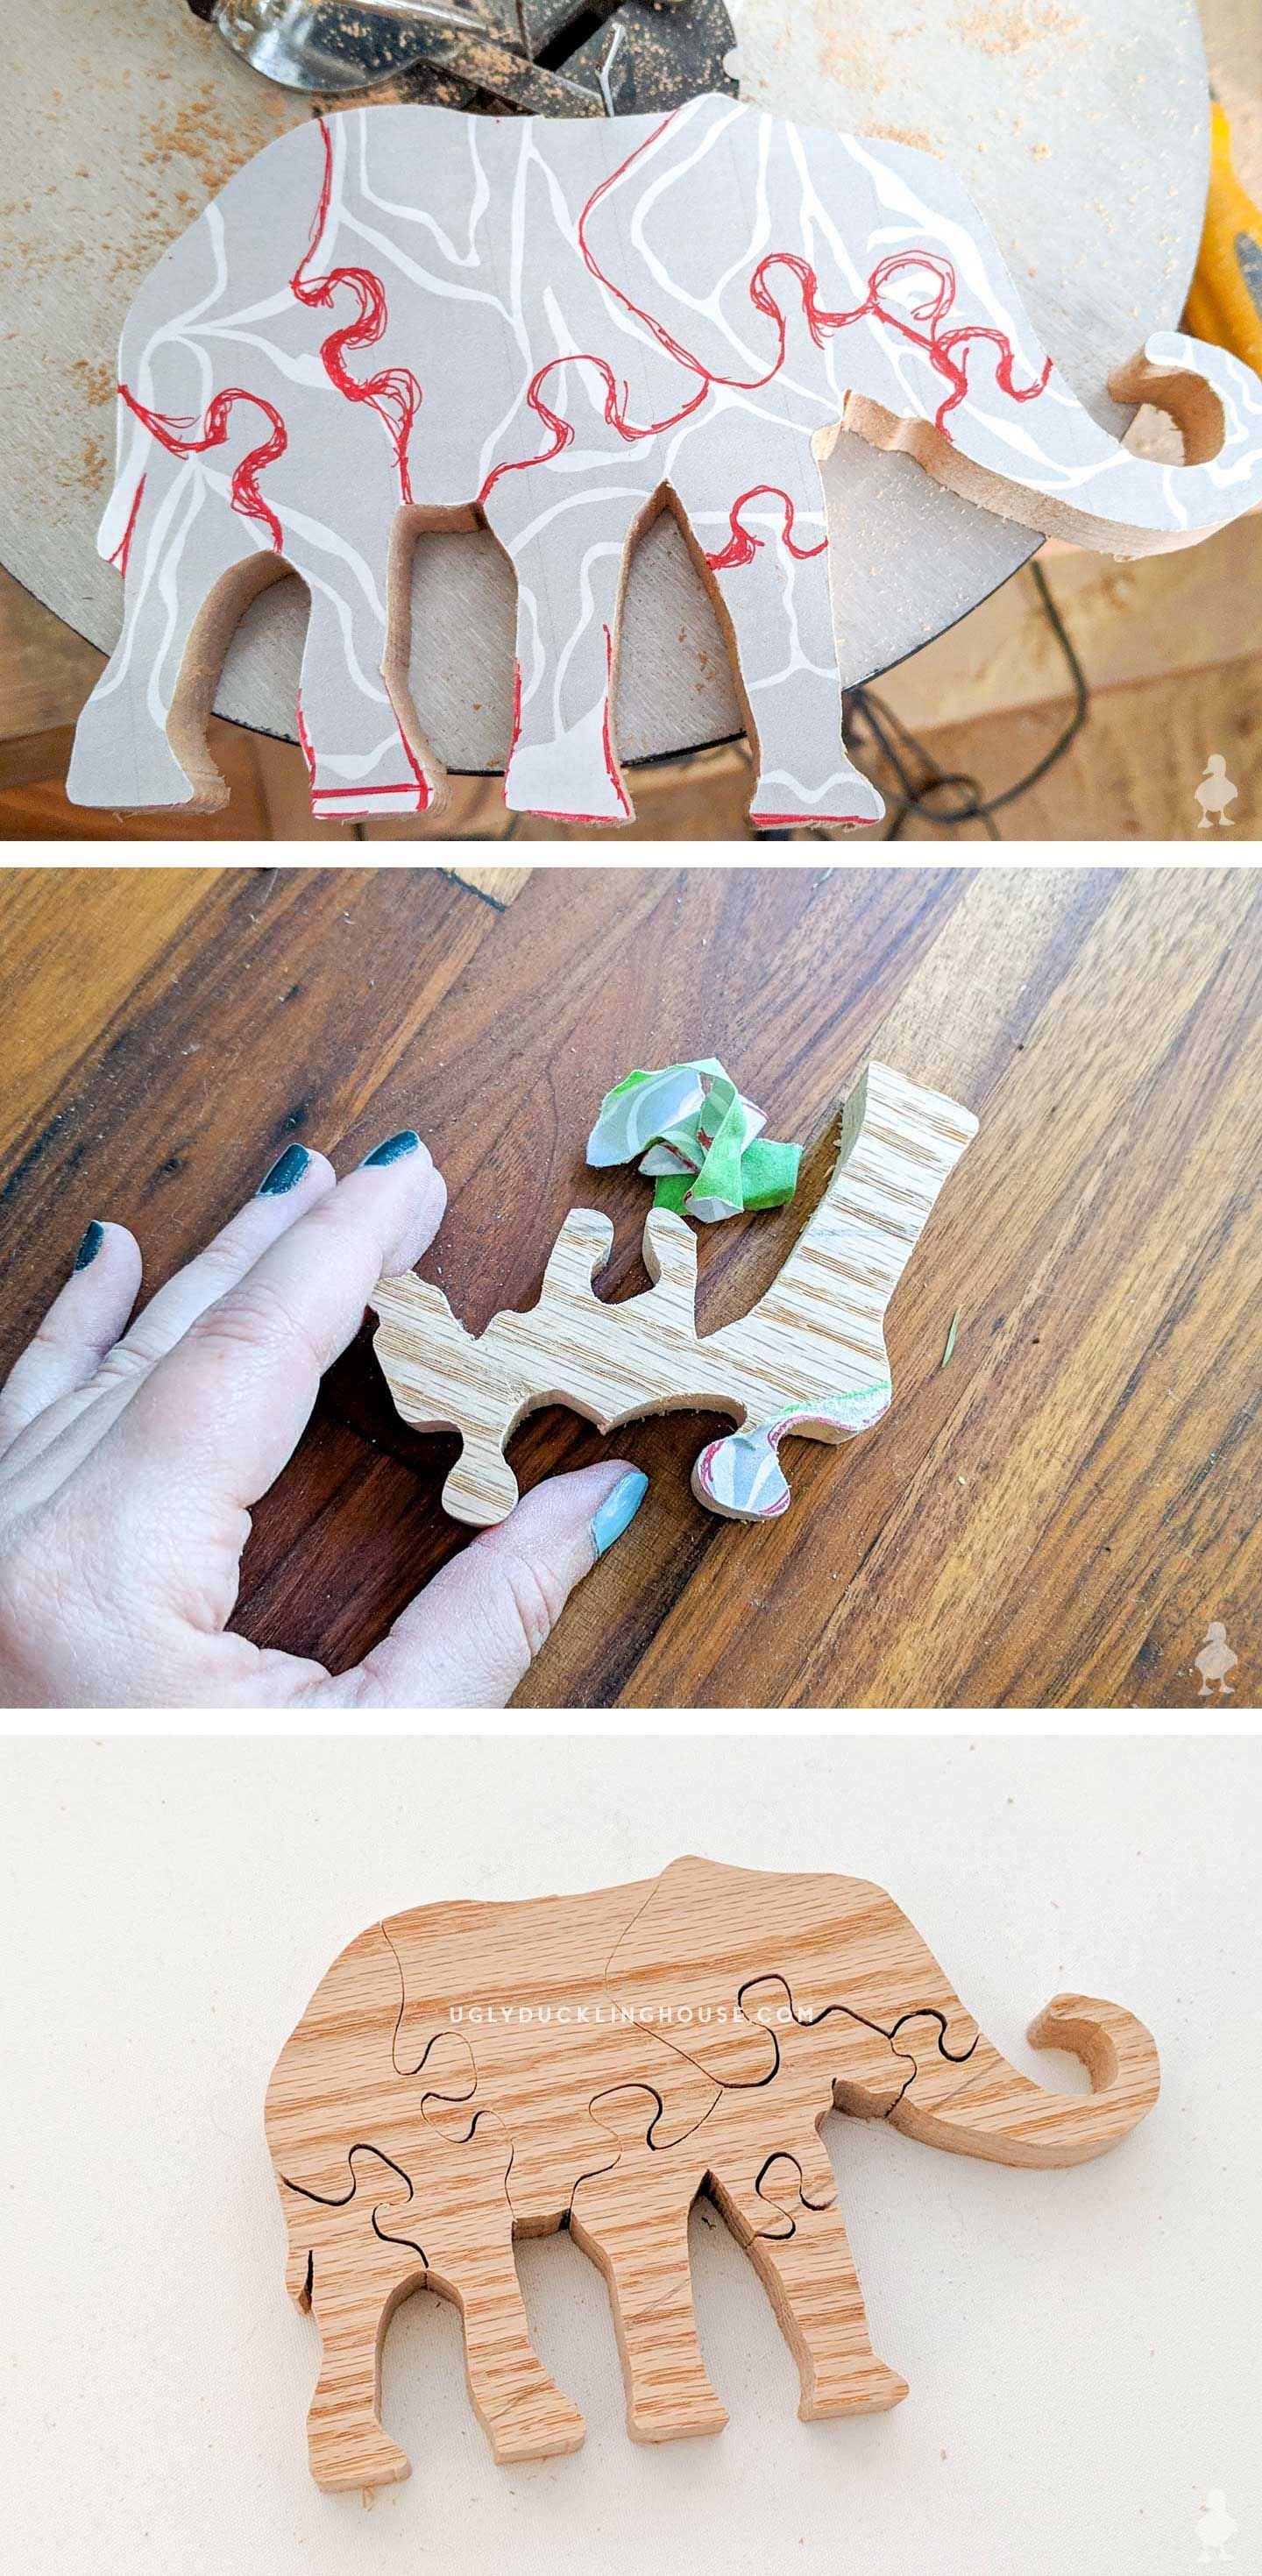 Elephant template for a scroll saw puzzle! Each piece interlocks with the other so that it can be laid flat or stand on a table. Makes a great gift and is a good introductory project for kids who are interested in woodworking #kids #diy #diygifts #giftideas #giftsforkids #childrenstoys #scrollsaw #elephant #doityourself #scrapwood #diygames #woodworkingforkids